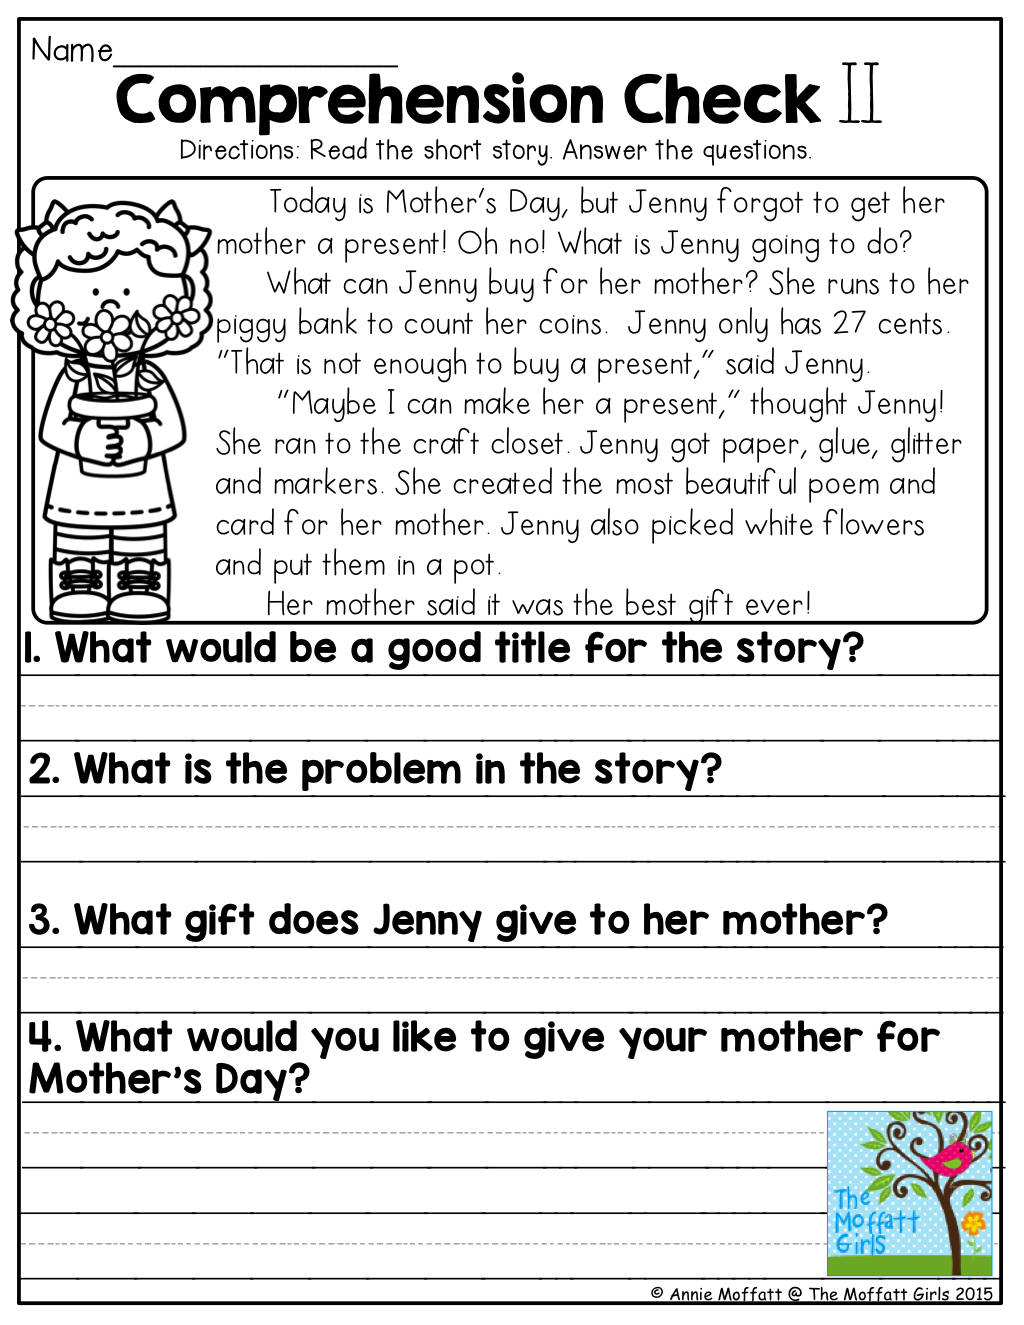 Worksheet Short Stories With Reading Comprehension Questions reading comprehension checks for march 20 short stories to build read the story and answer questions tons of other